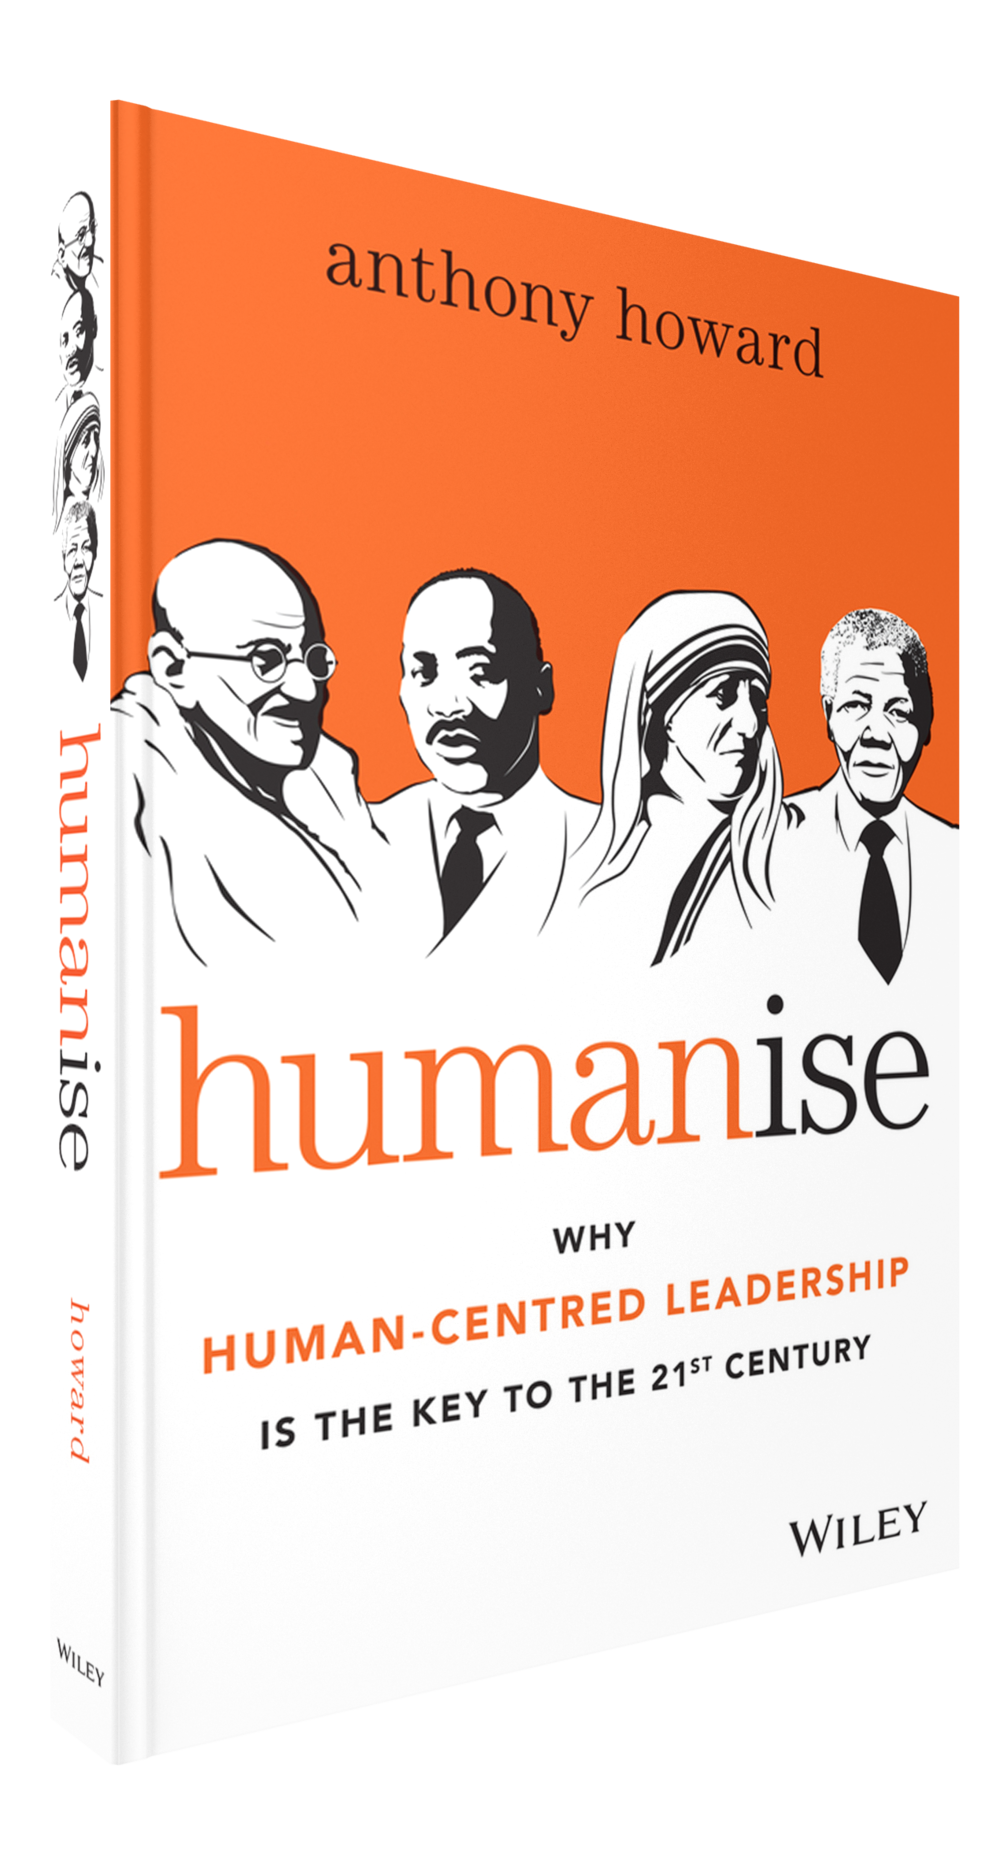 Humanise the book